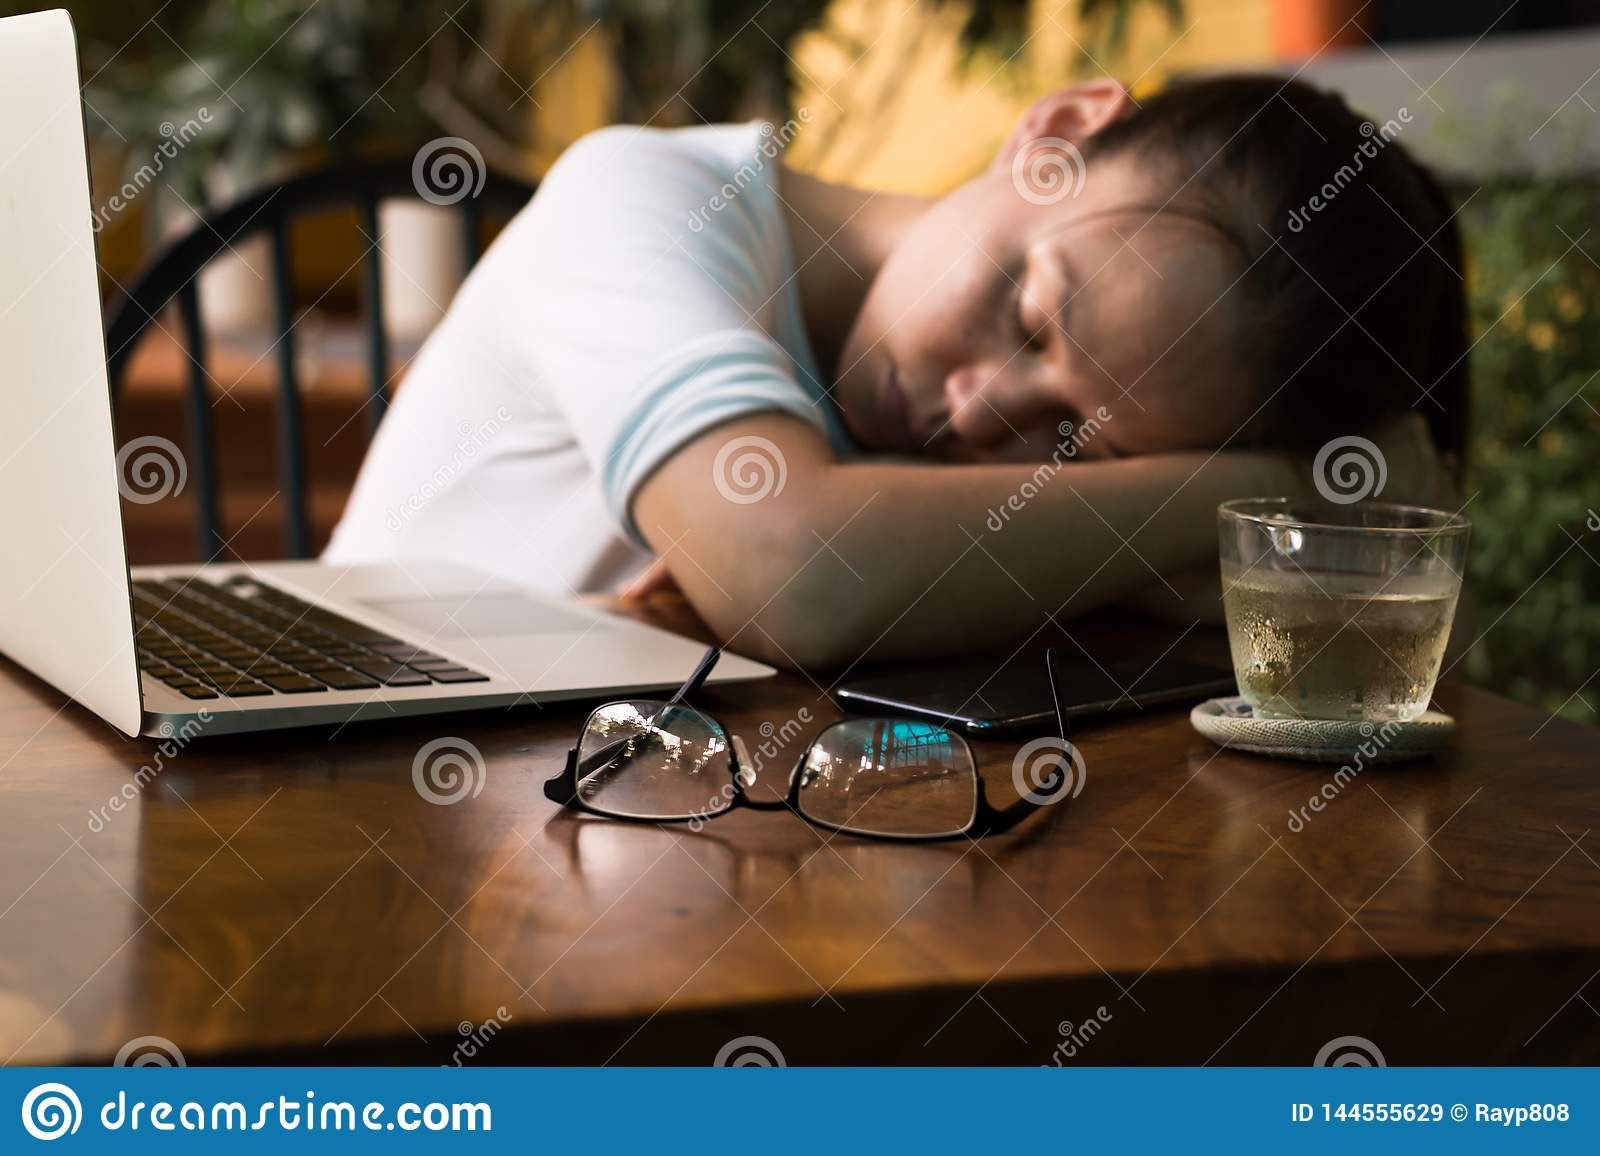 Tired young woman sleeping on her computer desk